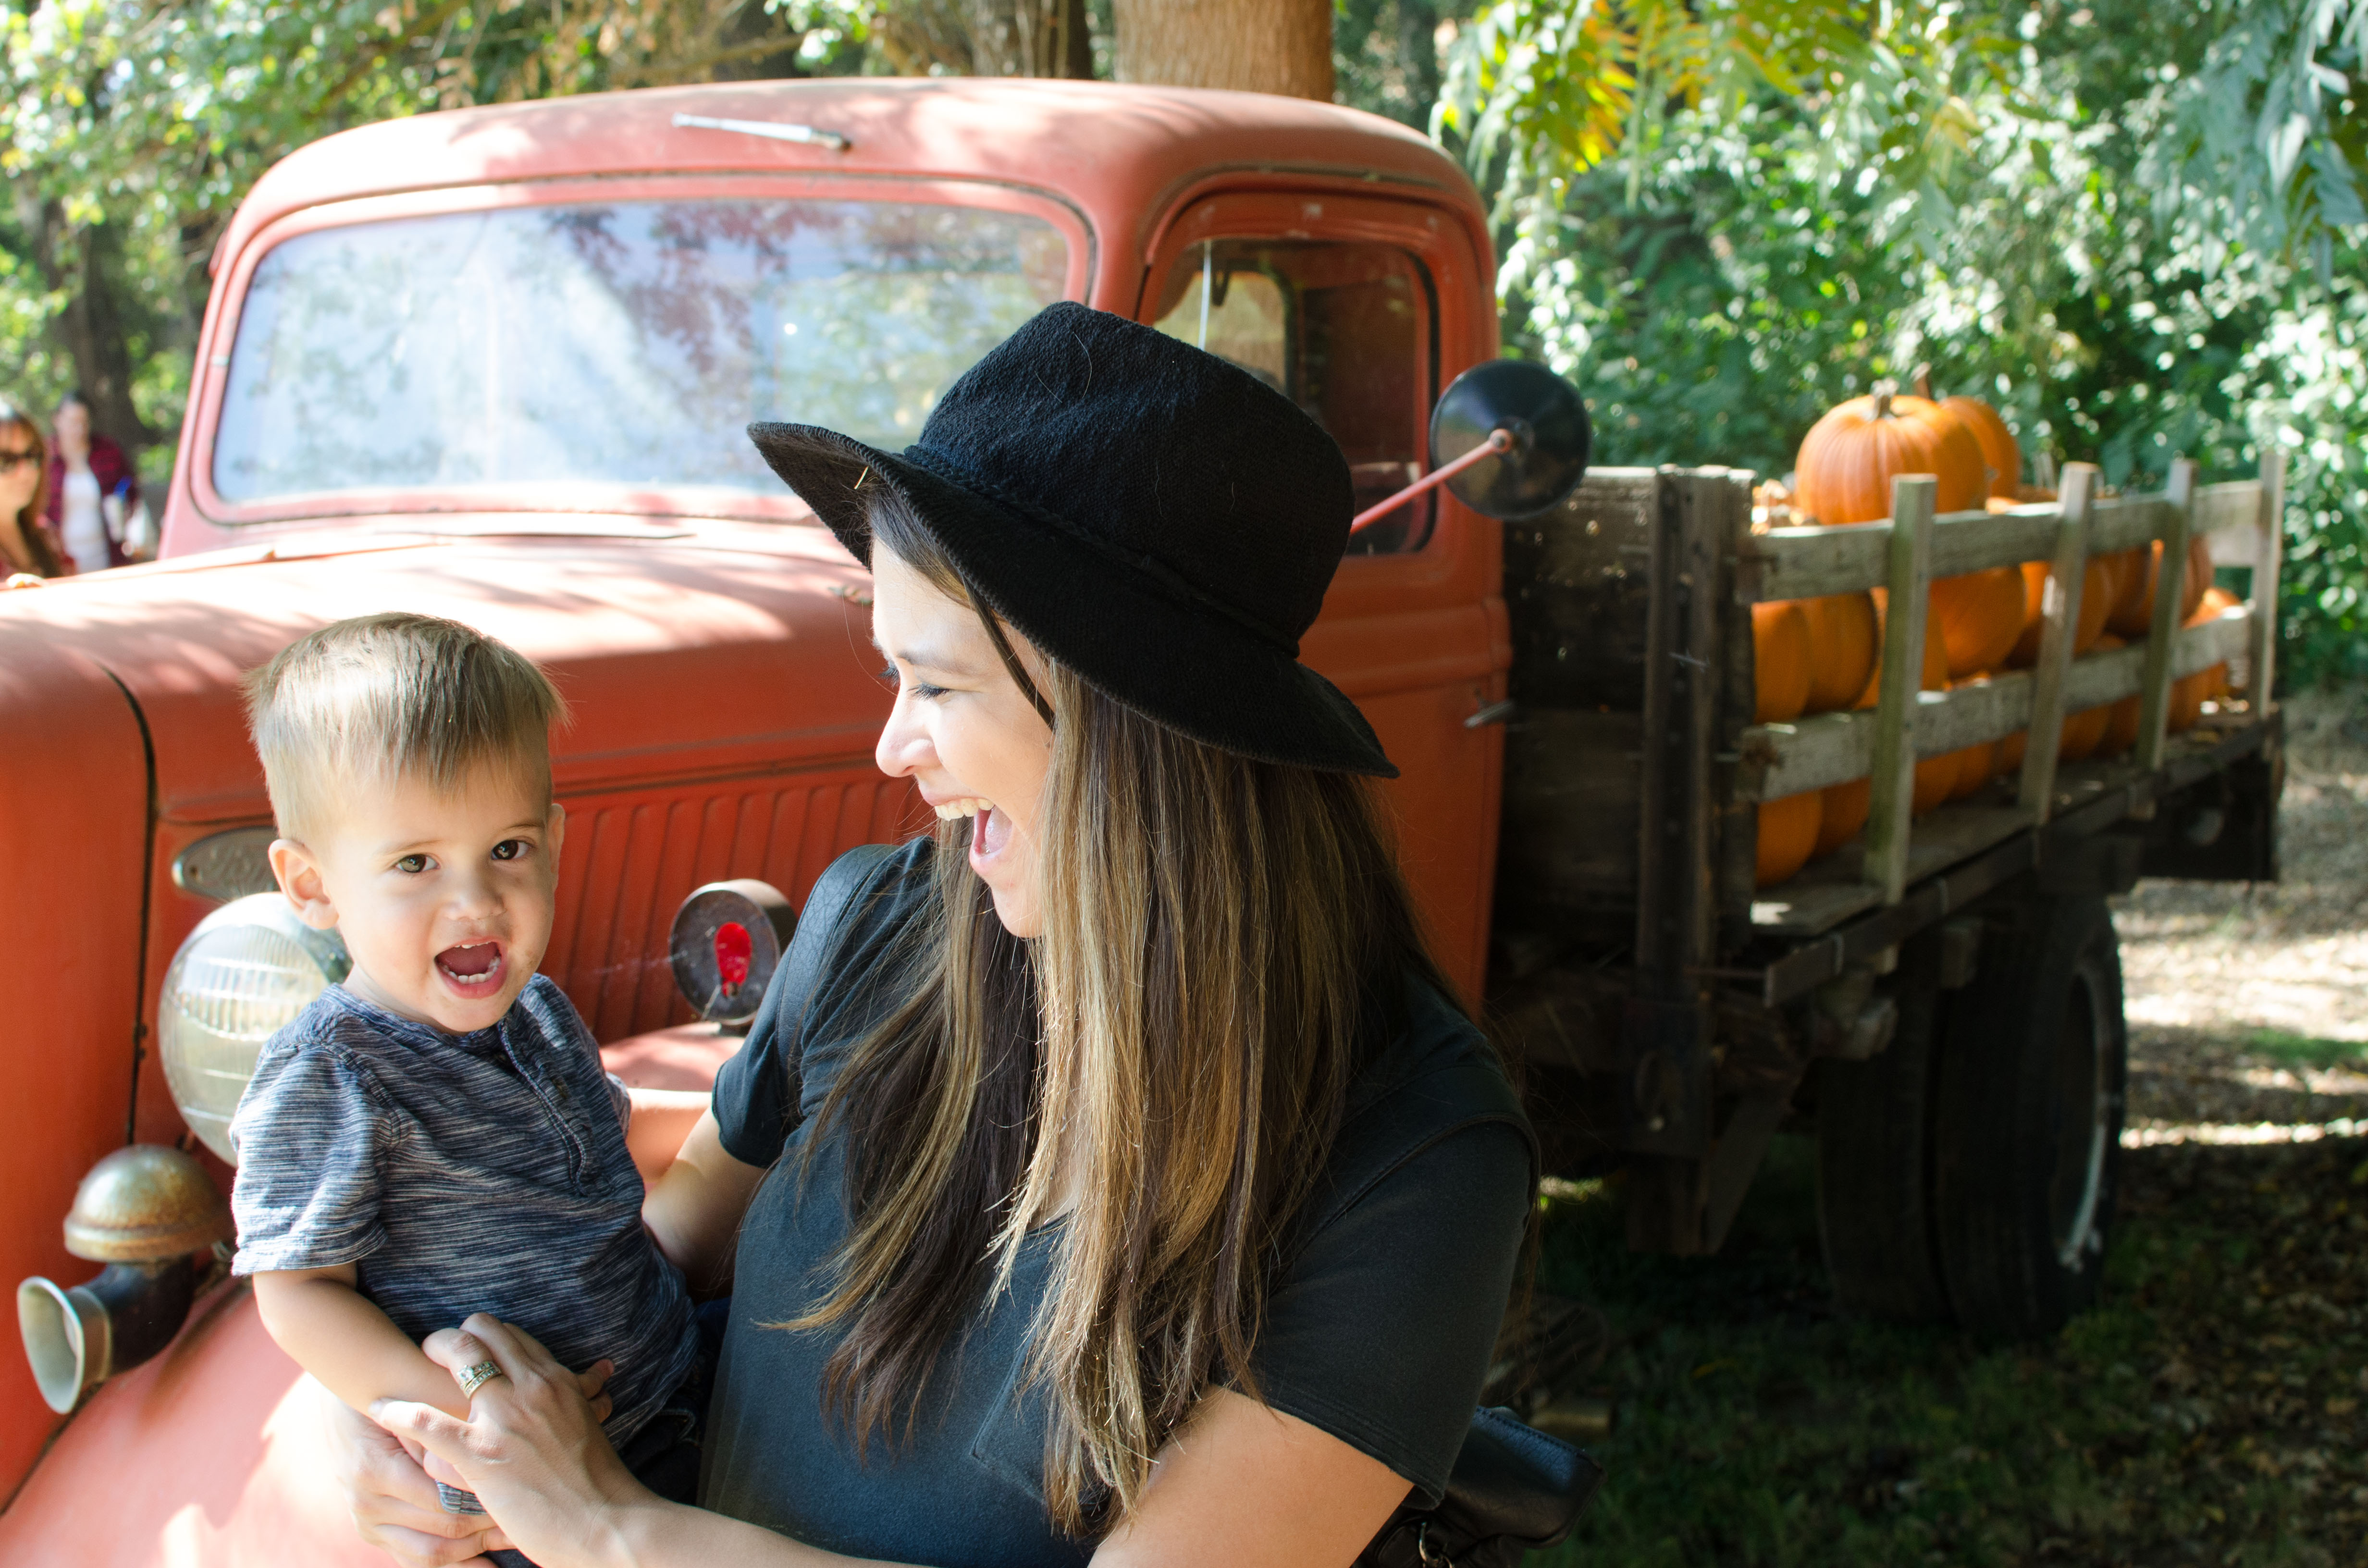 The Reality of Taking a Toddler to the Pumpkin Patch